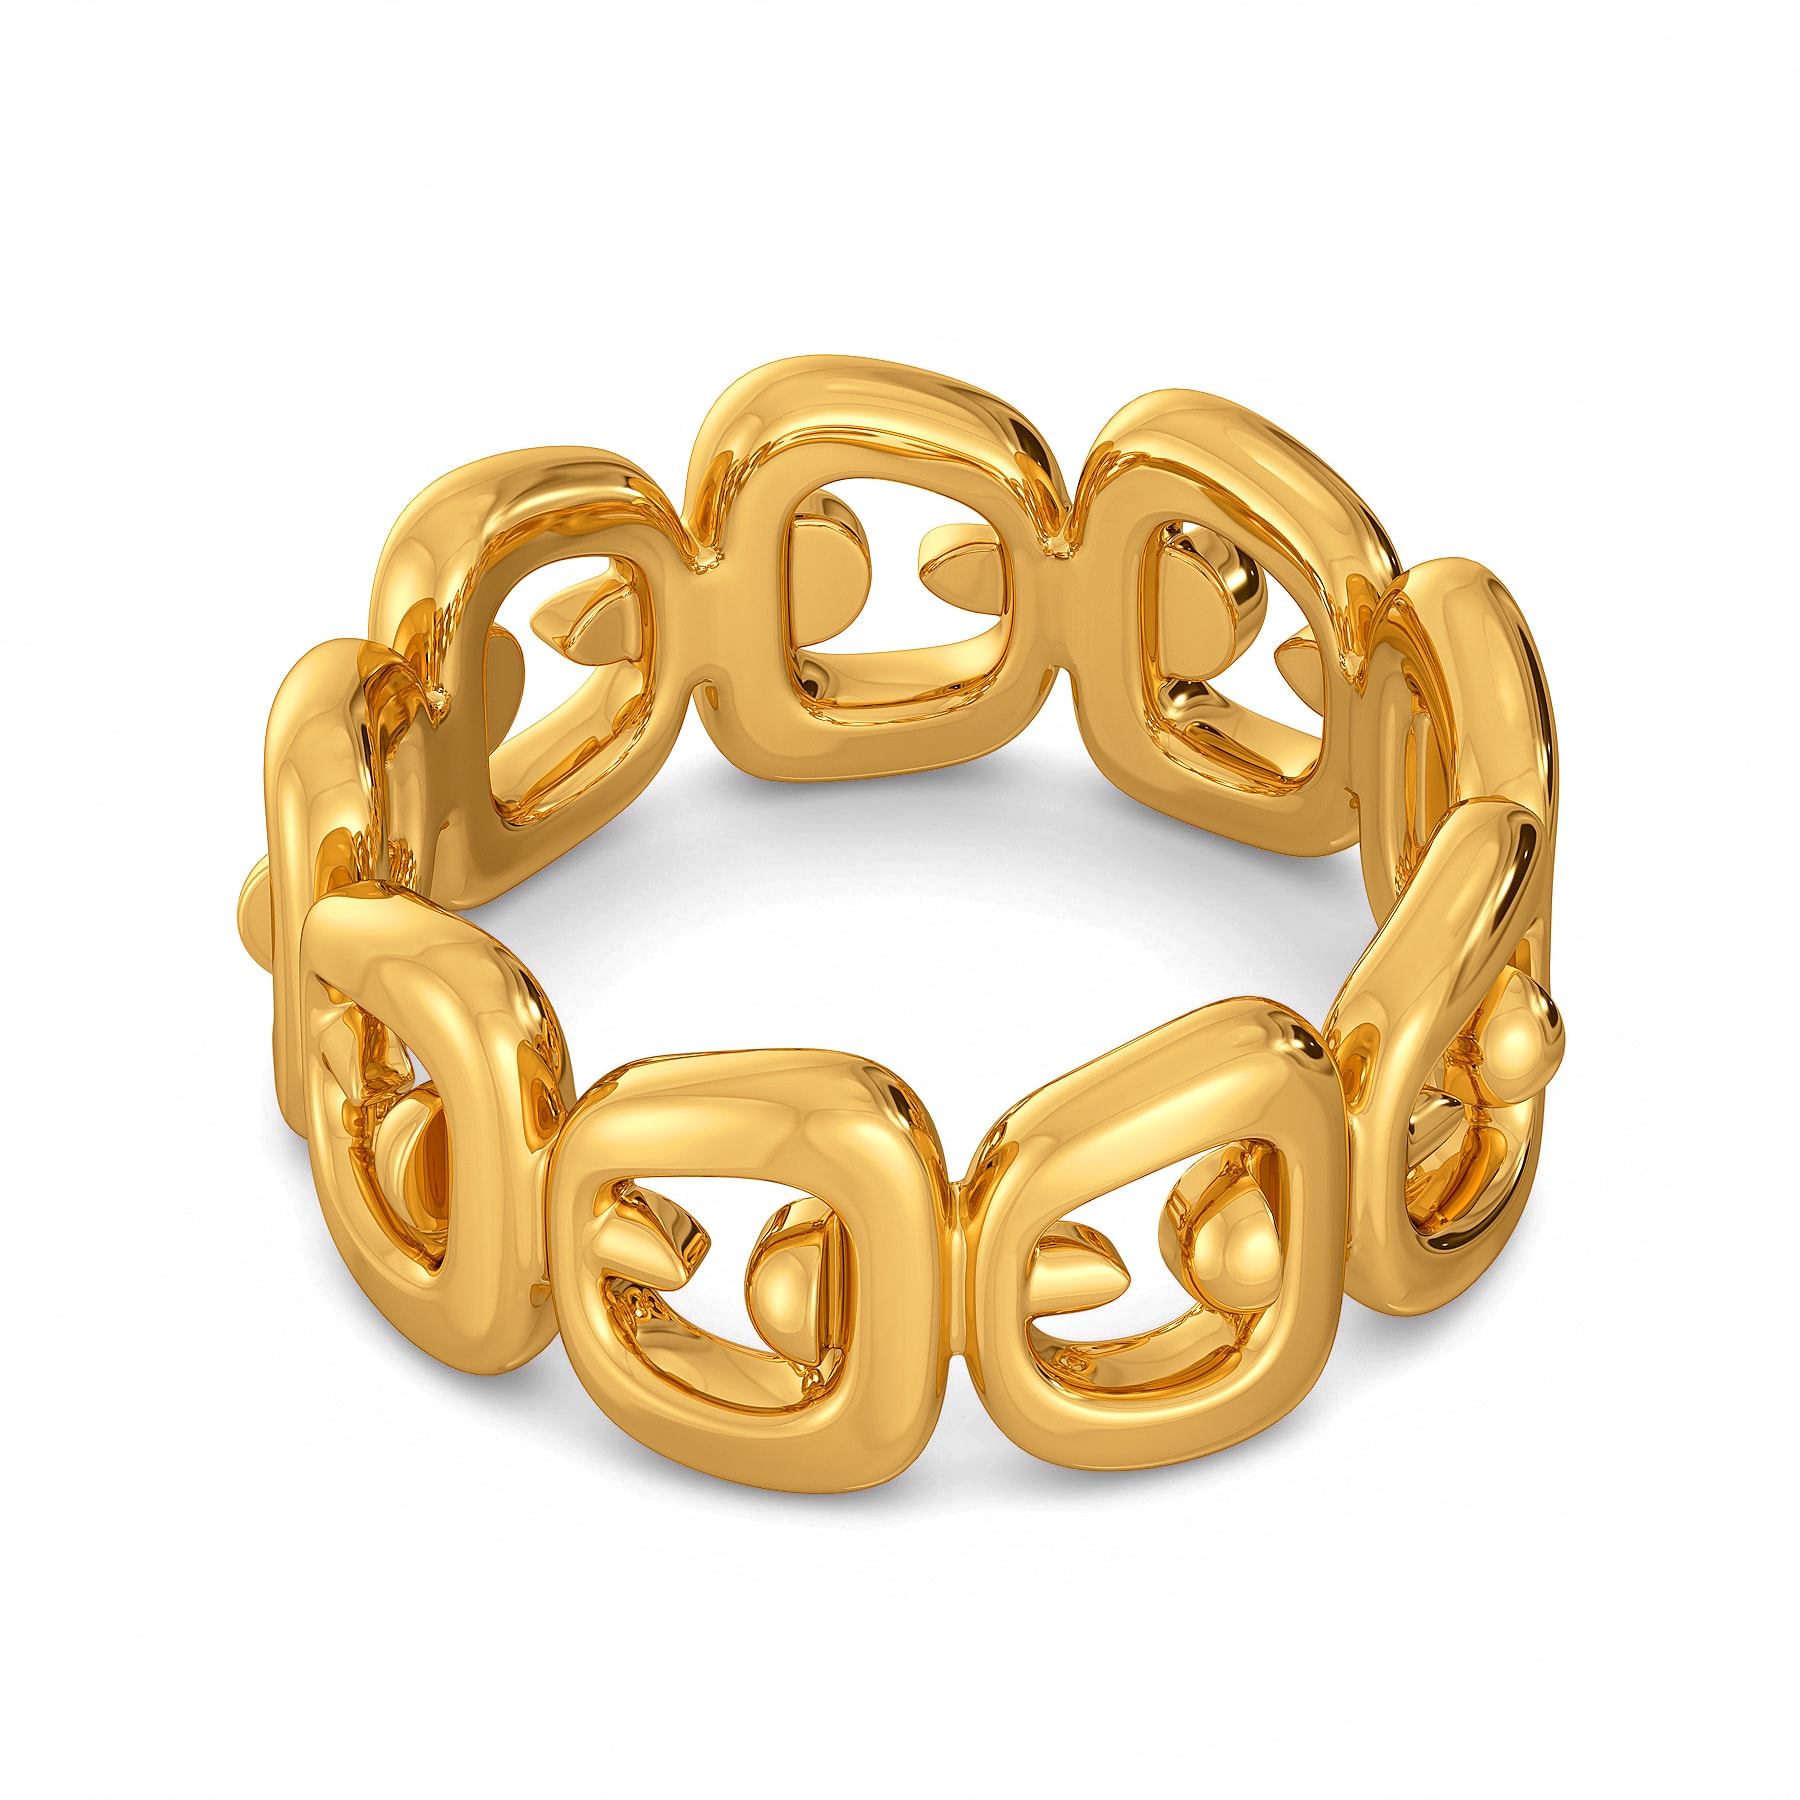 Edgy Links Gold Rings